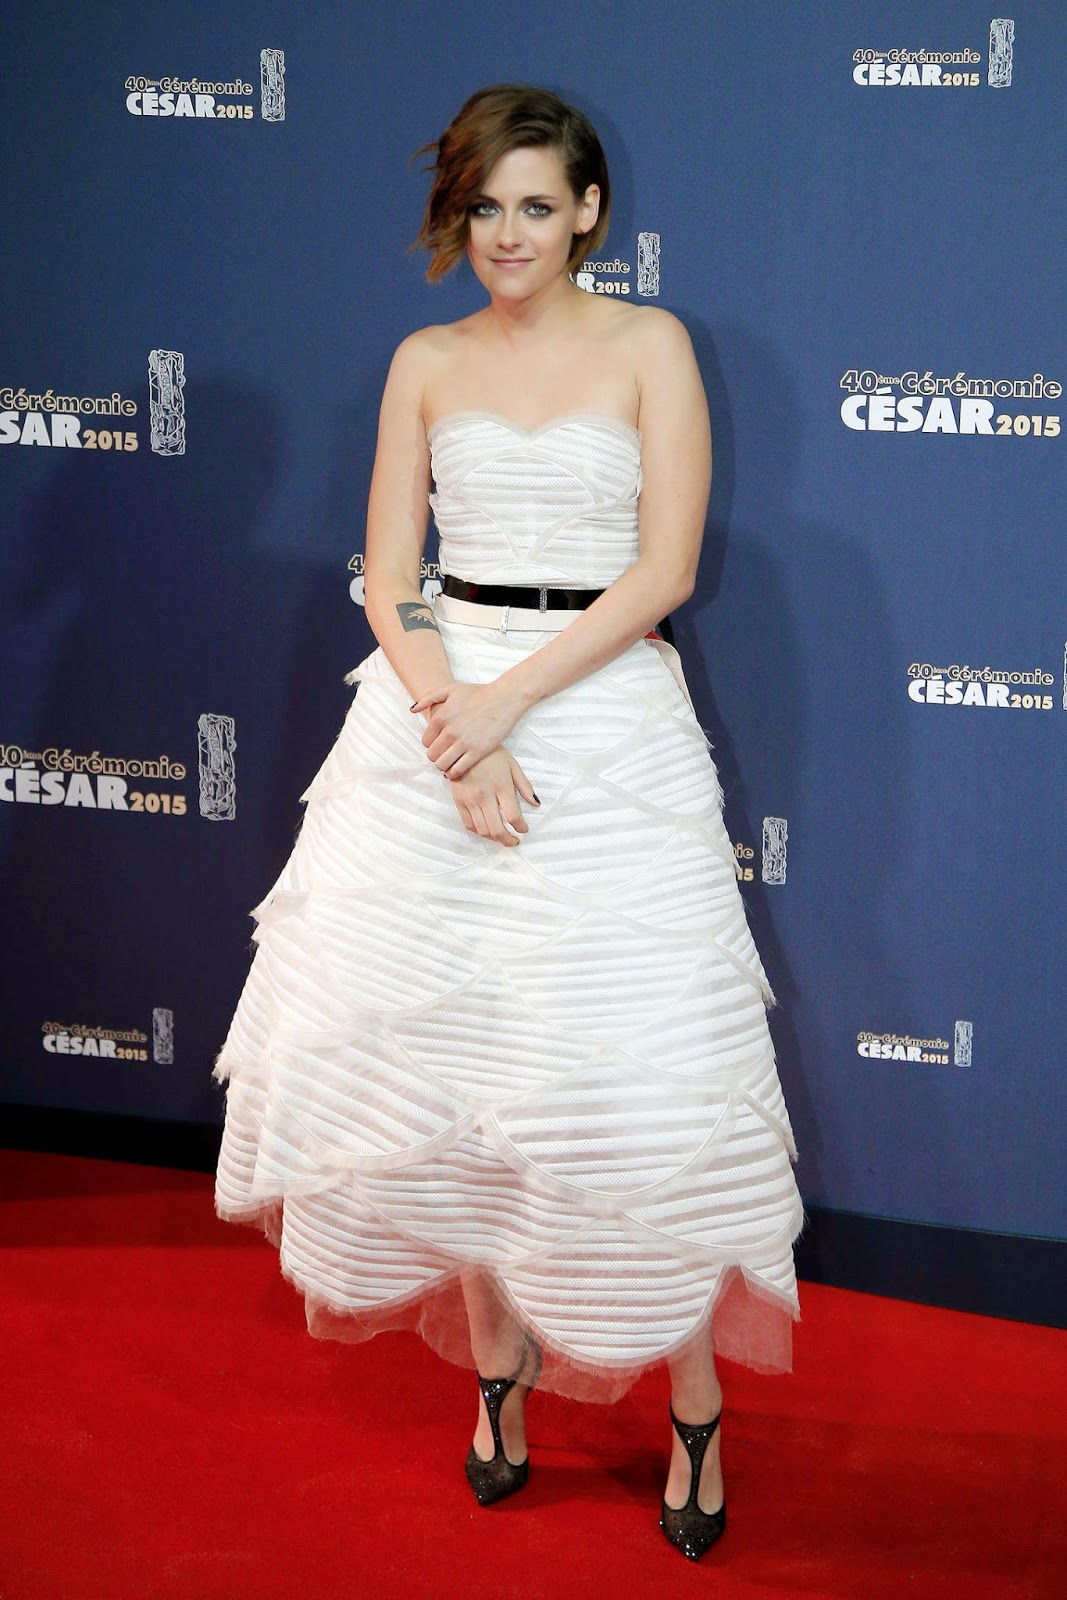 Kristen Stewart in a strapless Chanel Couture dress at the 40th Cesar Awards in Paris